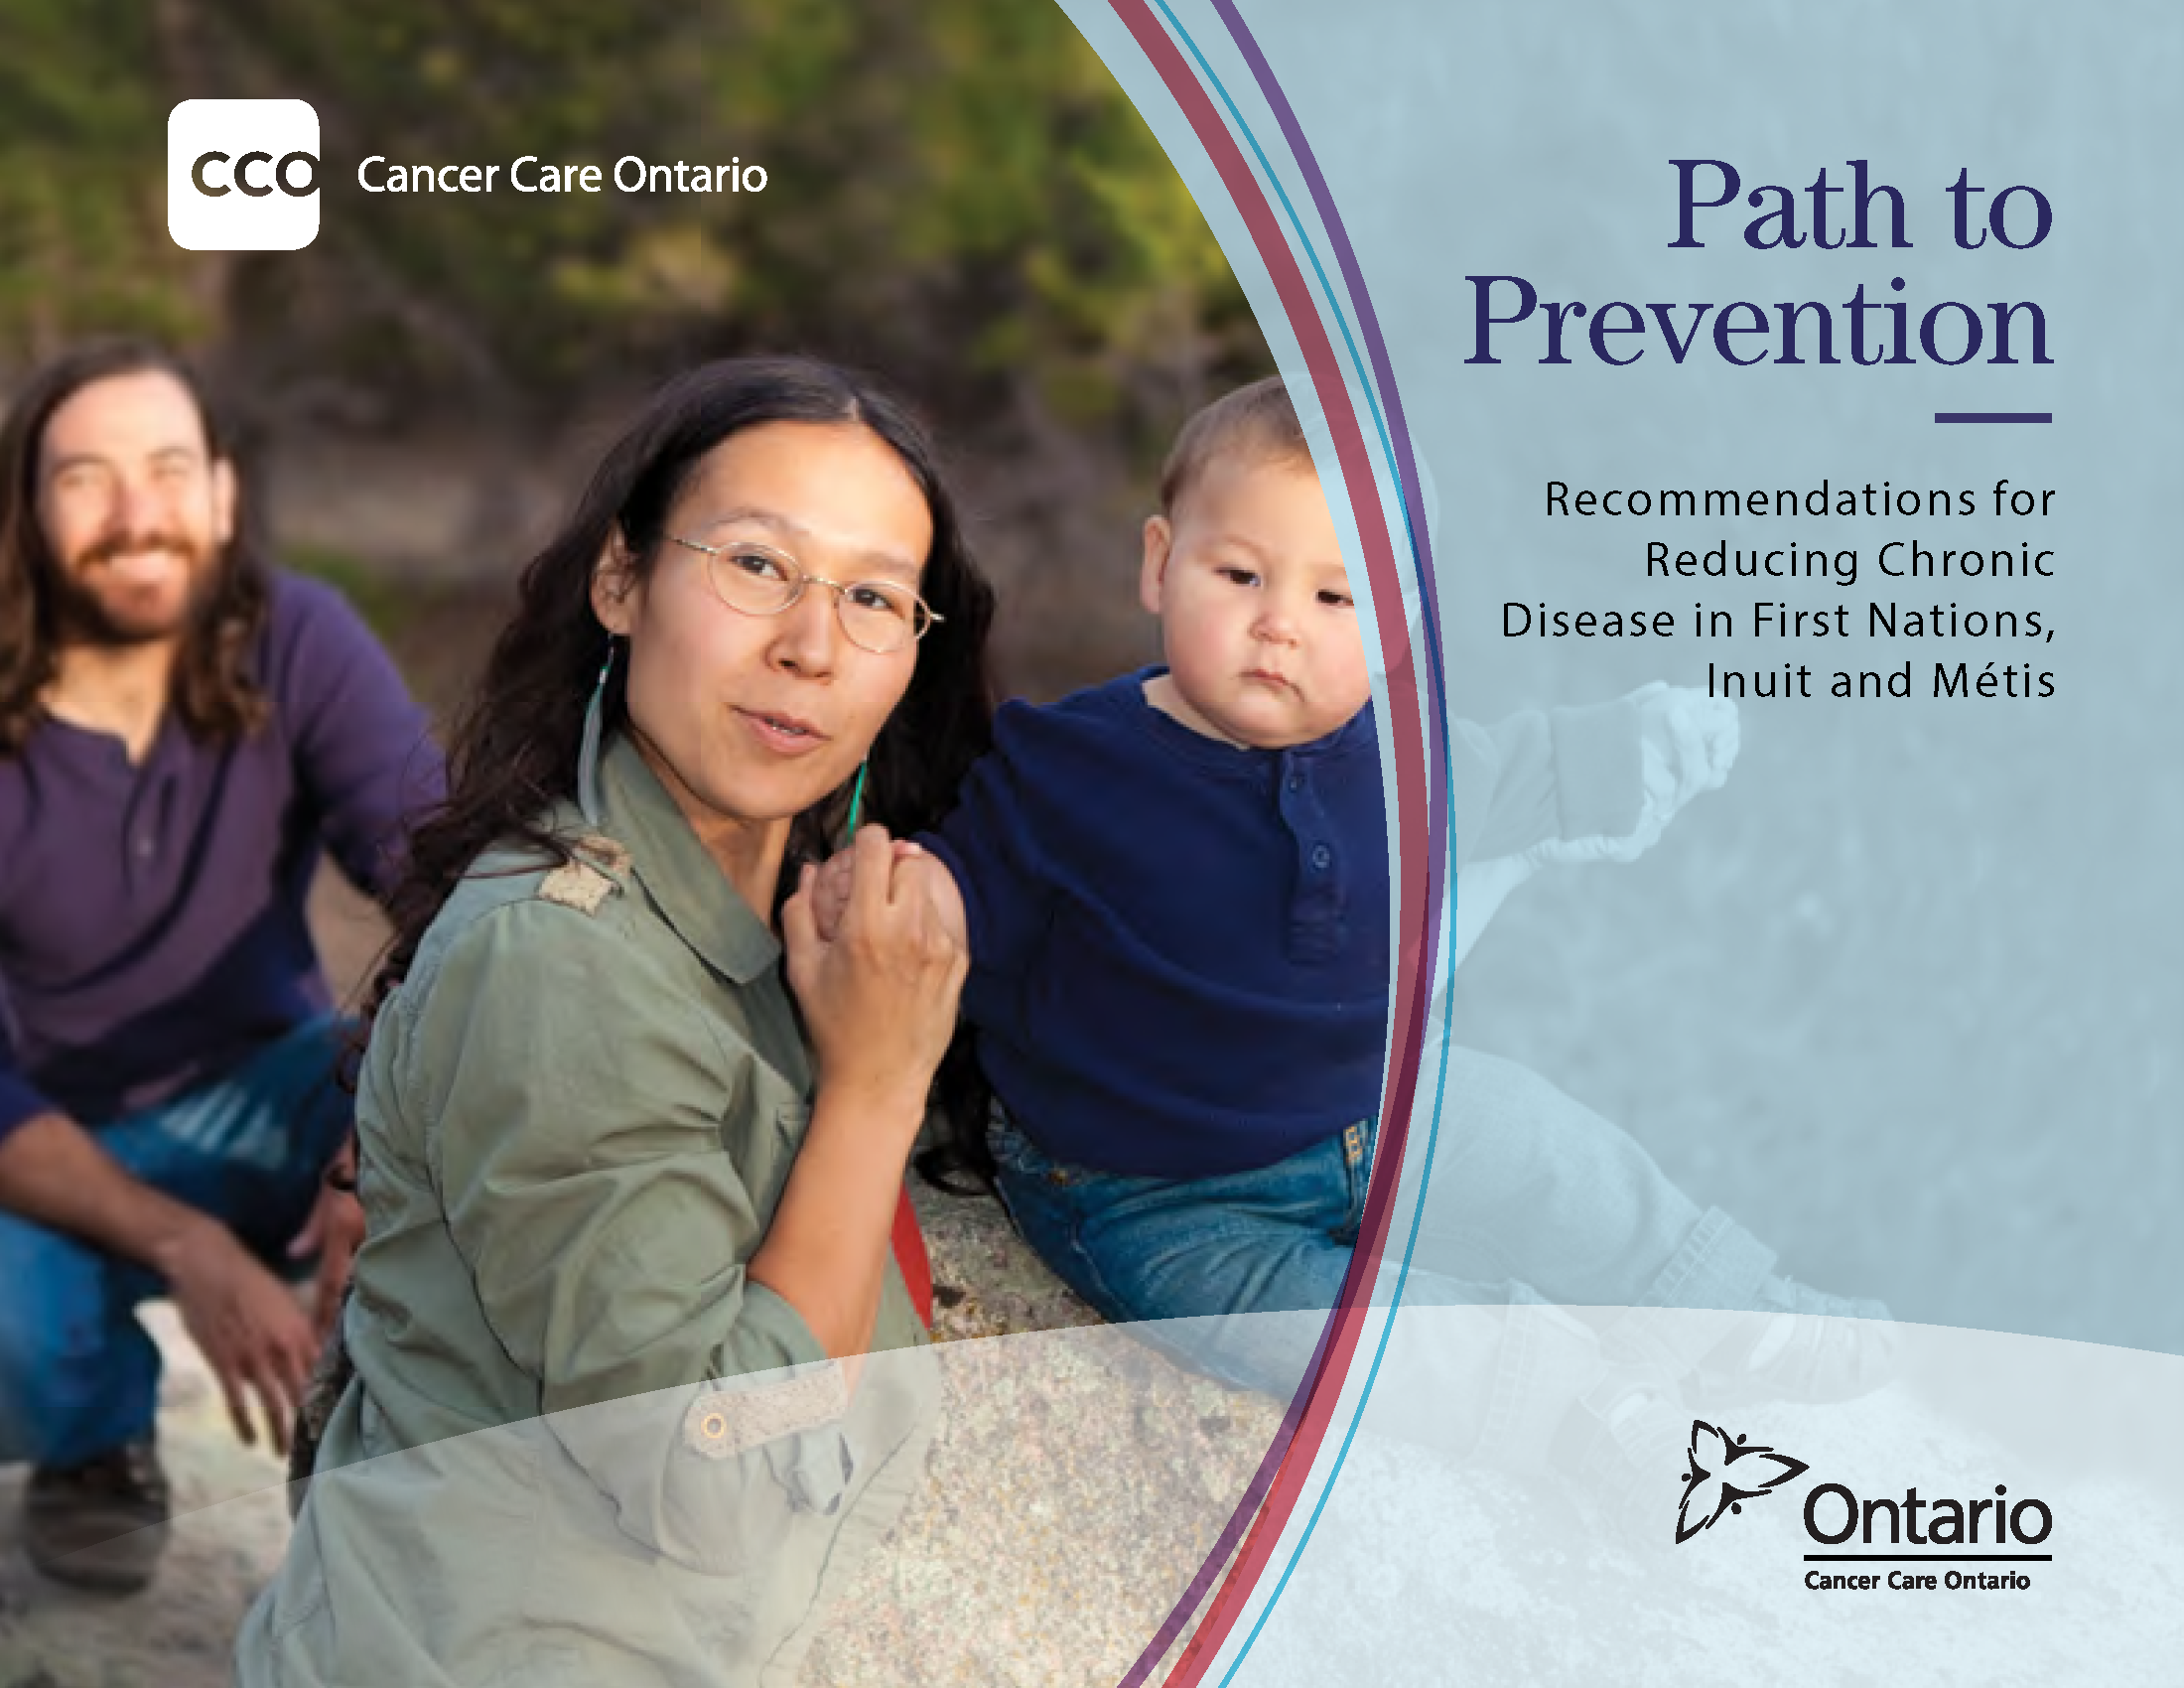 Path to Prevention: Recommendations for Reducing Chronic Disease in First Nations, Inuit and Métis